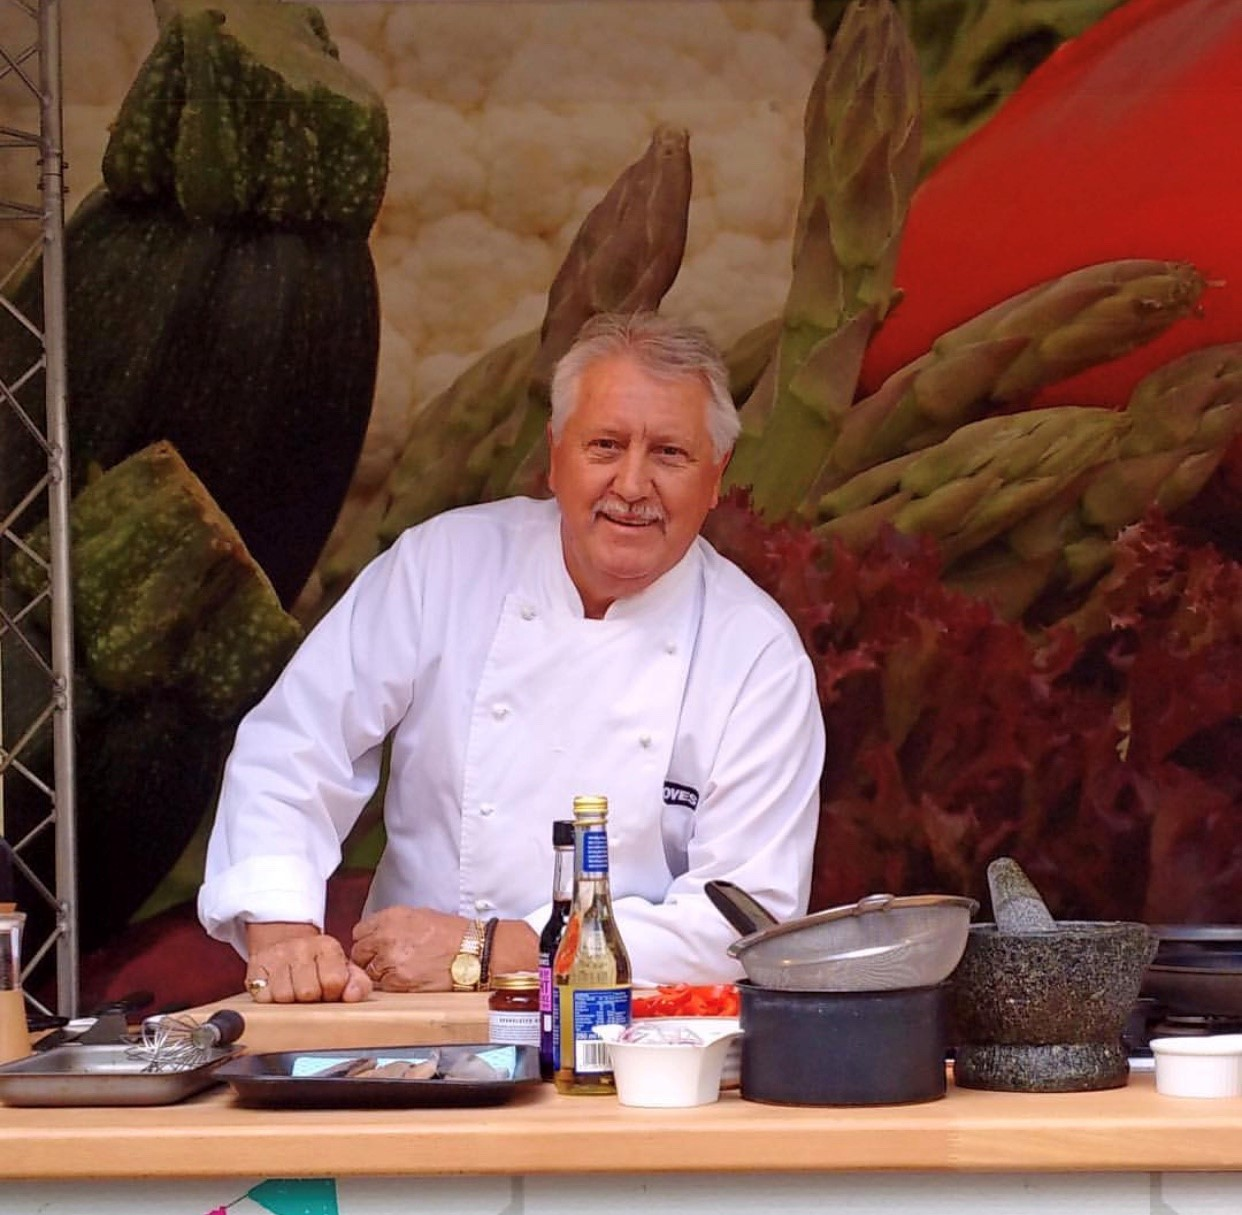 Brian Turner, a guest chef at the Mudeford Seafood Festival